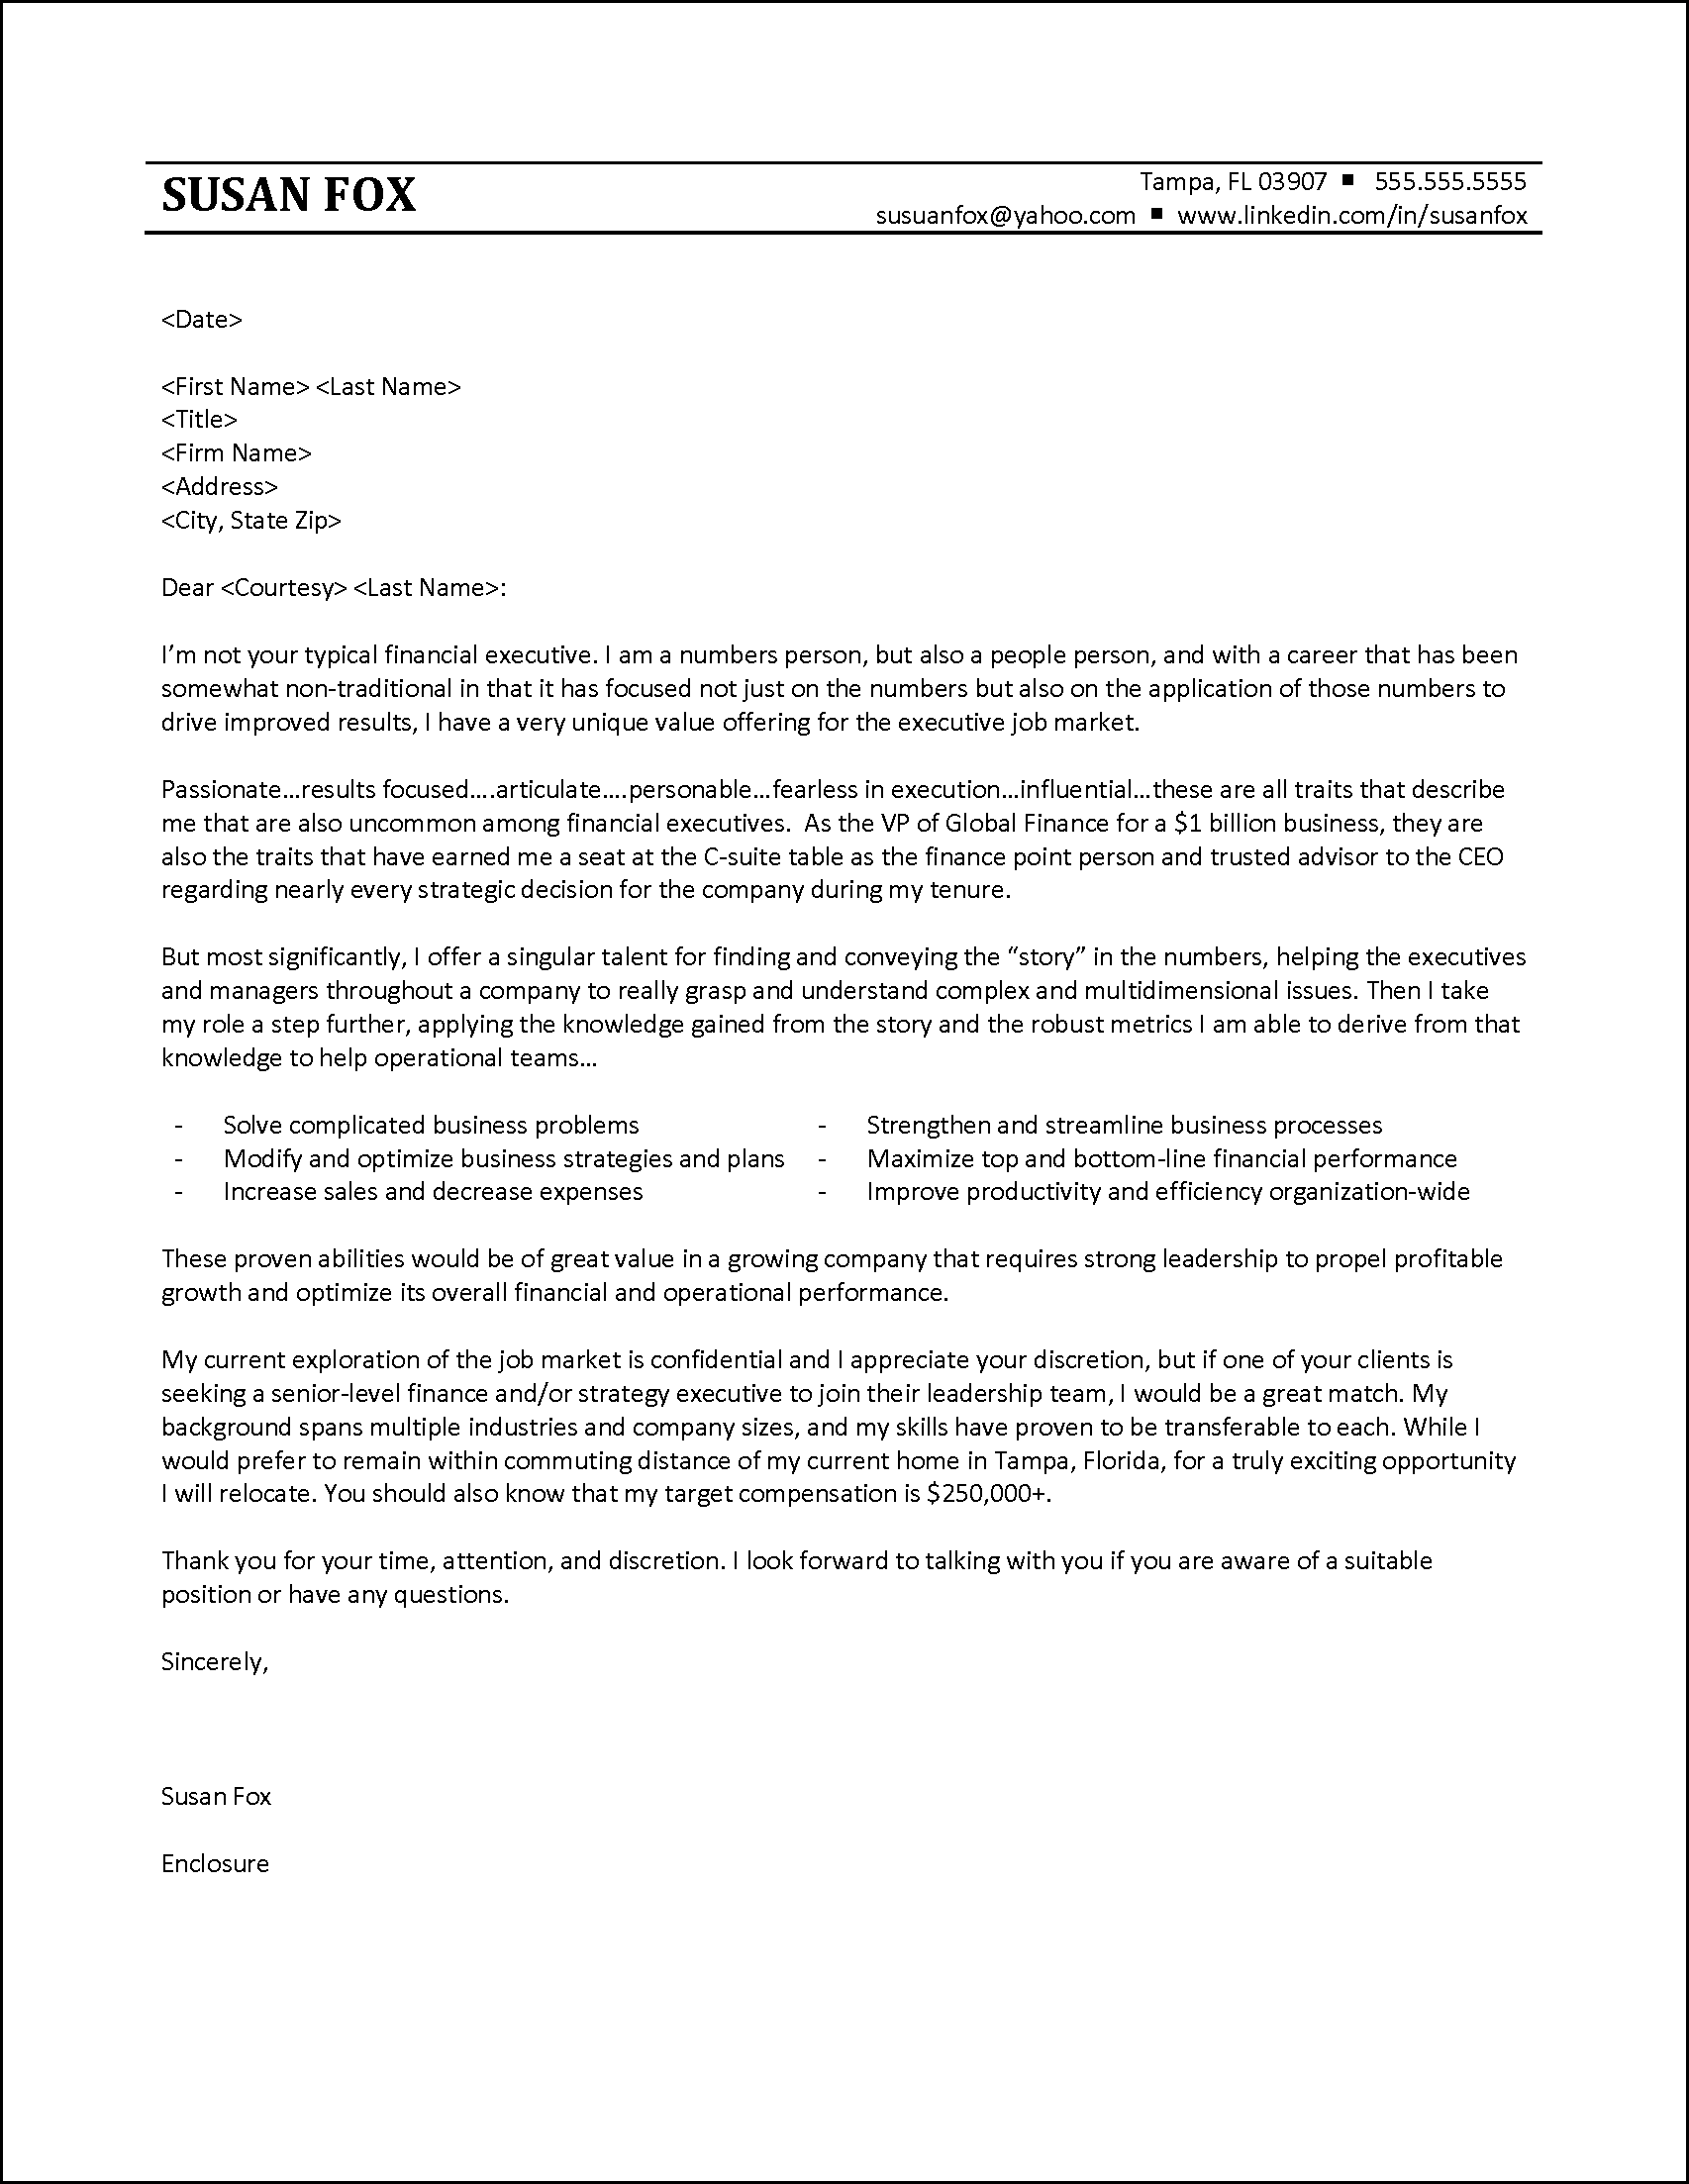 Example Cover Letter To Executive Recruiter  Sample Of A Cover Letter